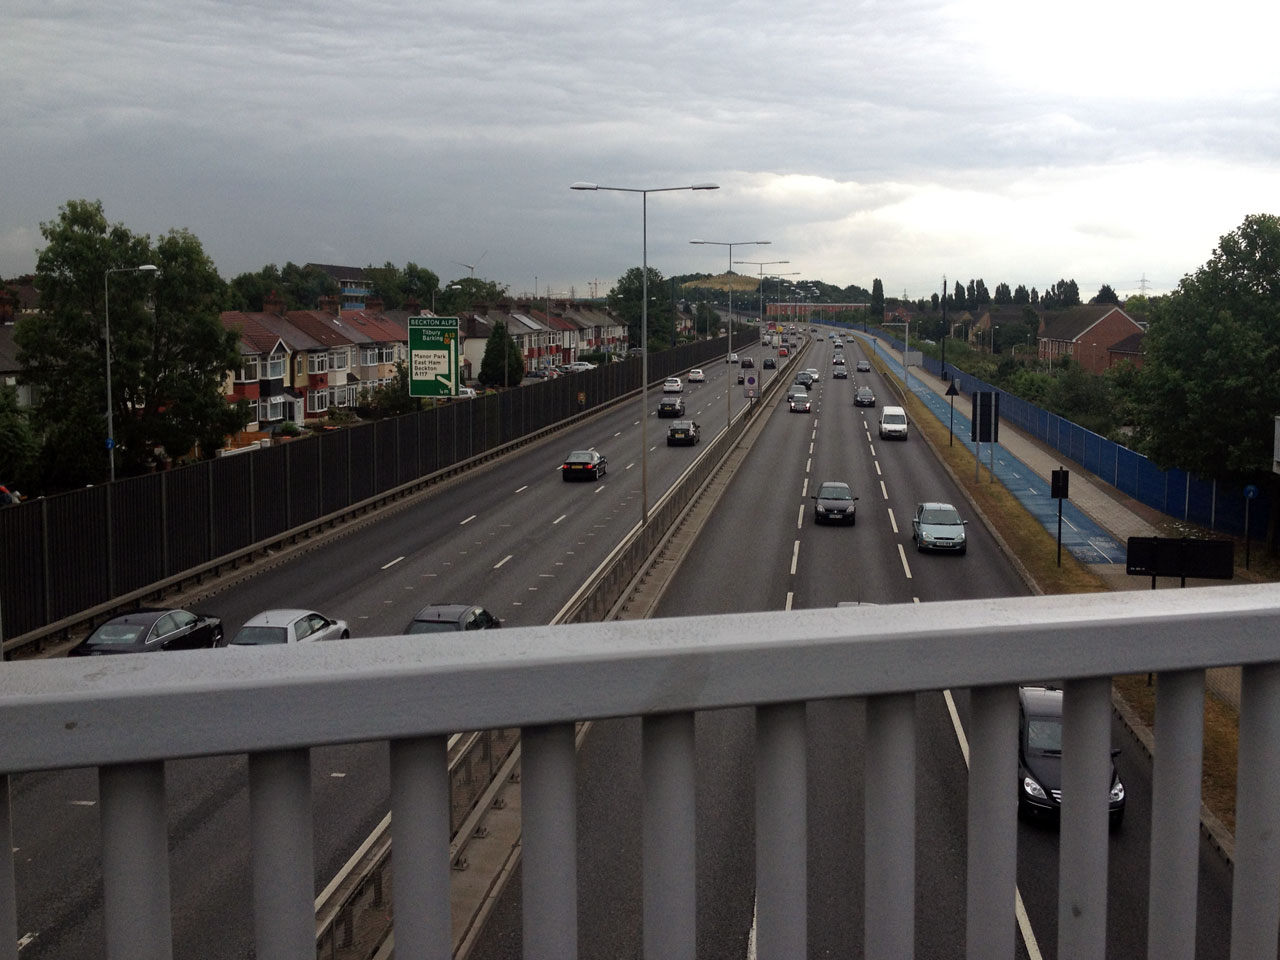 The A13 at Beckton, London